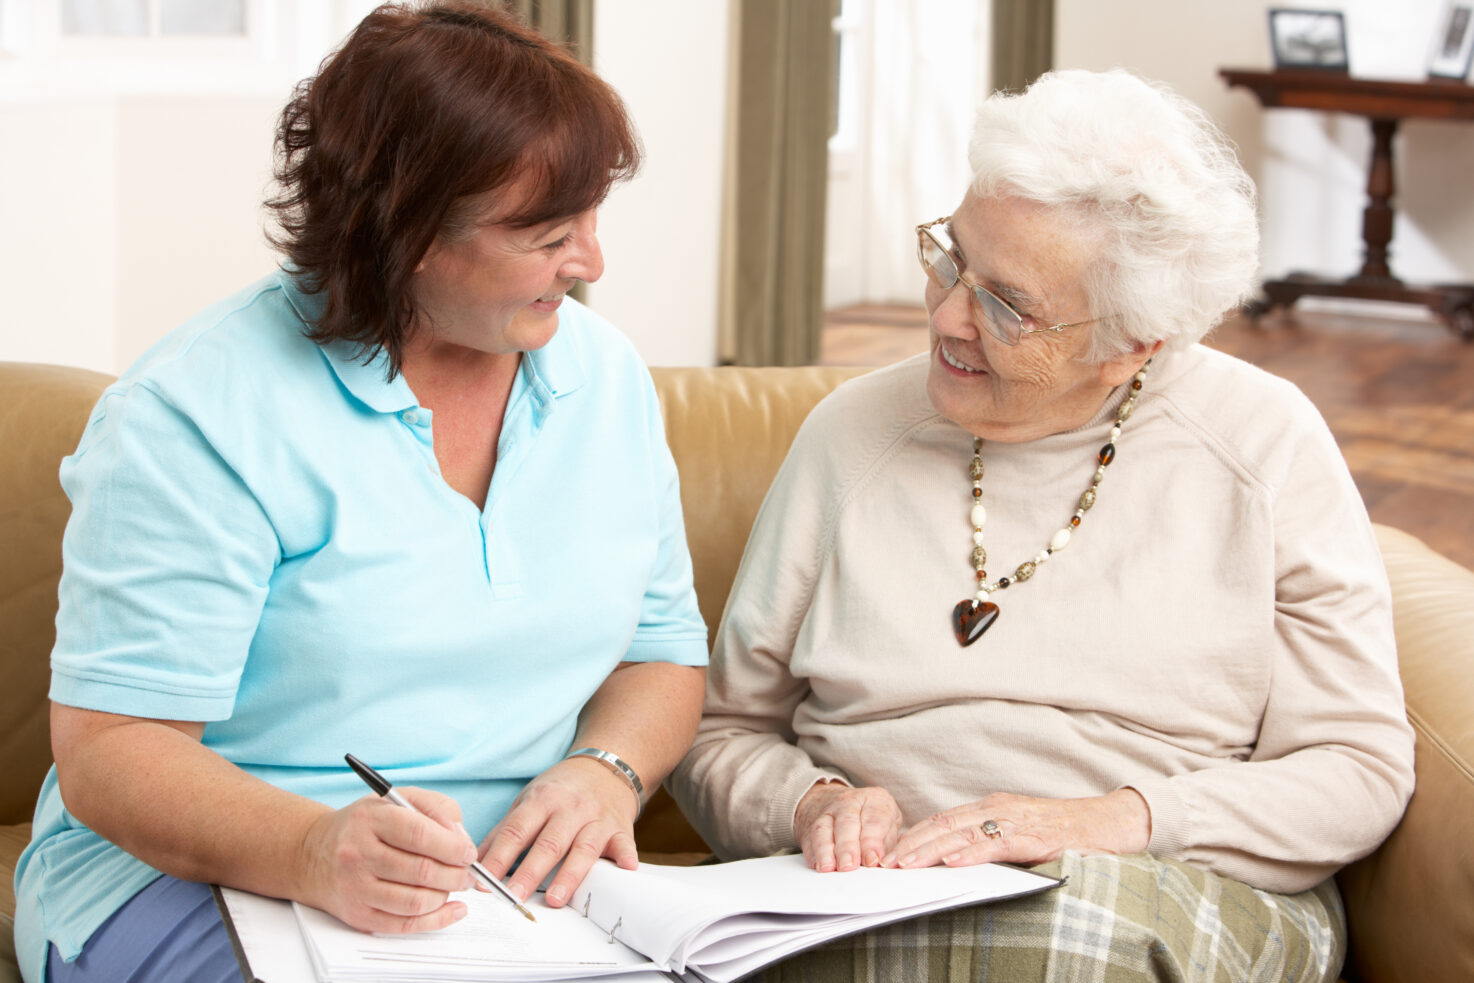 Senior Woman In Discussion With Caregiver At Home